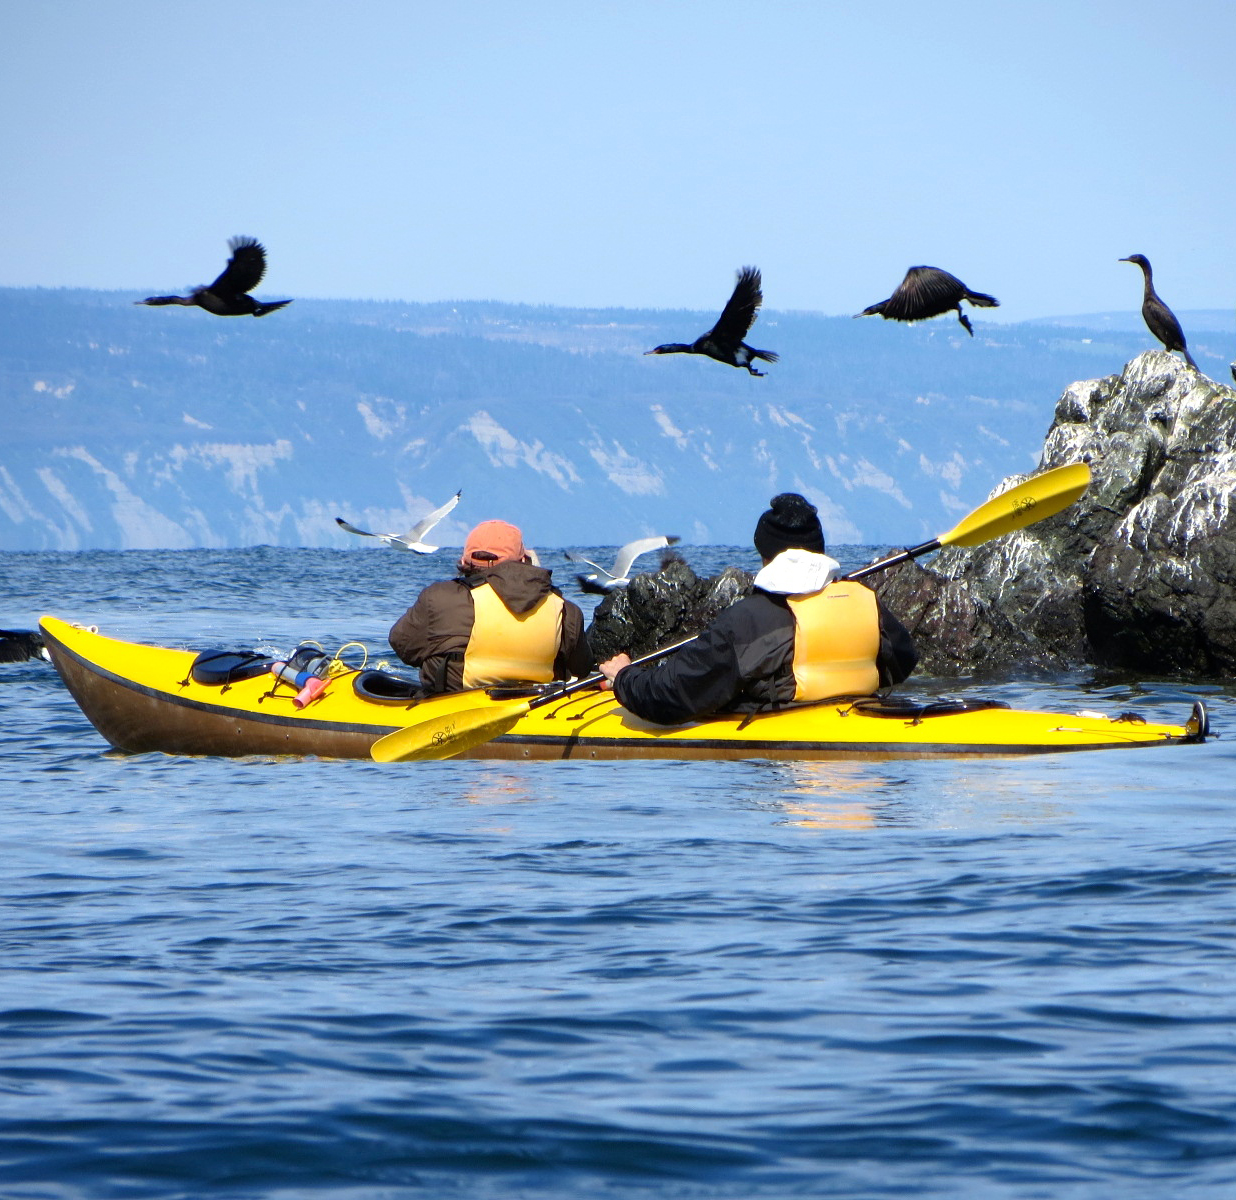 KAYAKING - Paddle the waters of Kachemak Bay State Park